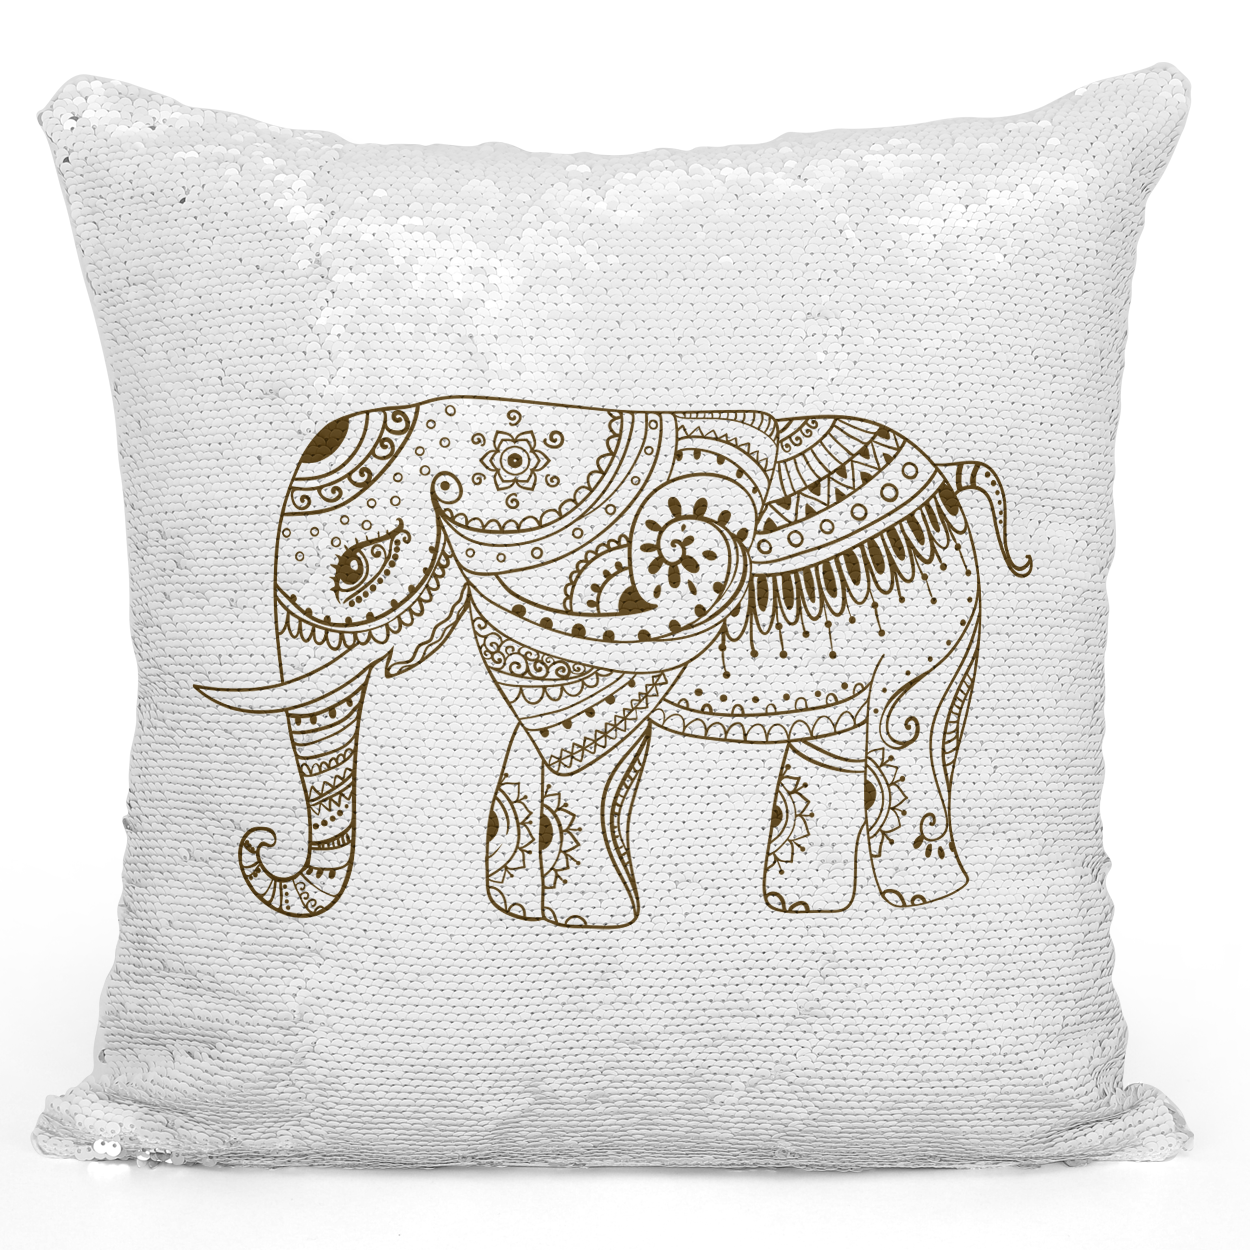 Sequin Pillow Magic Mermaid Throw Pillow Indian Mandala Elephant Bohemian Style Pillow - High Quality White 16 x 16 inch Square Livingroom Sofa Couch Pillow Loud Universe